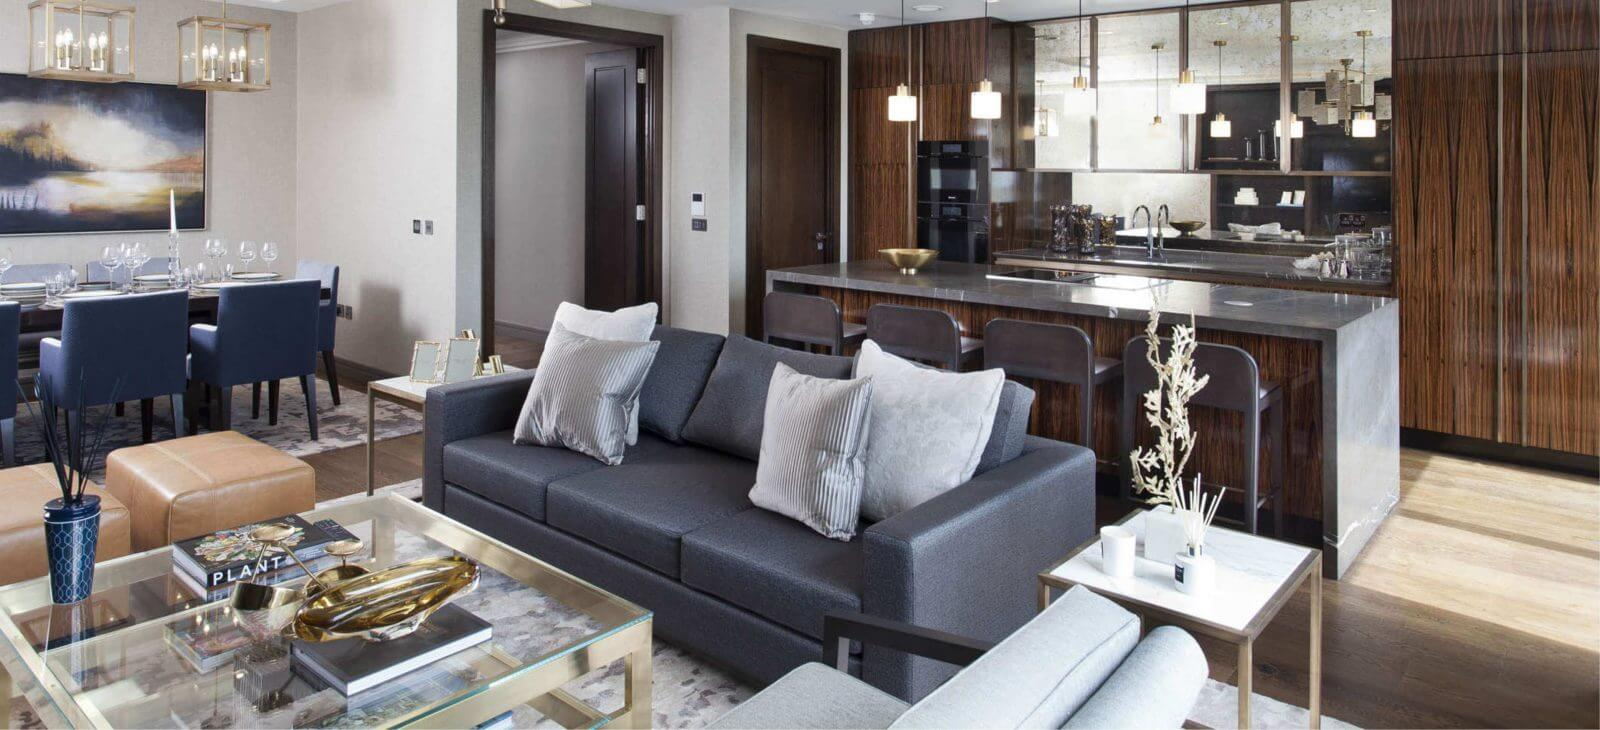 Living dining room in the luxurious penthouse apartments at the prestigious Lansdowne Place development in Ballsbridge